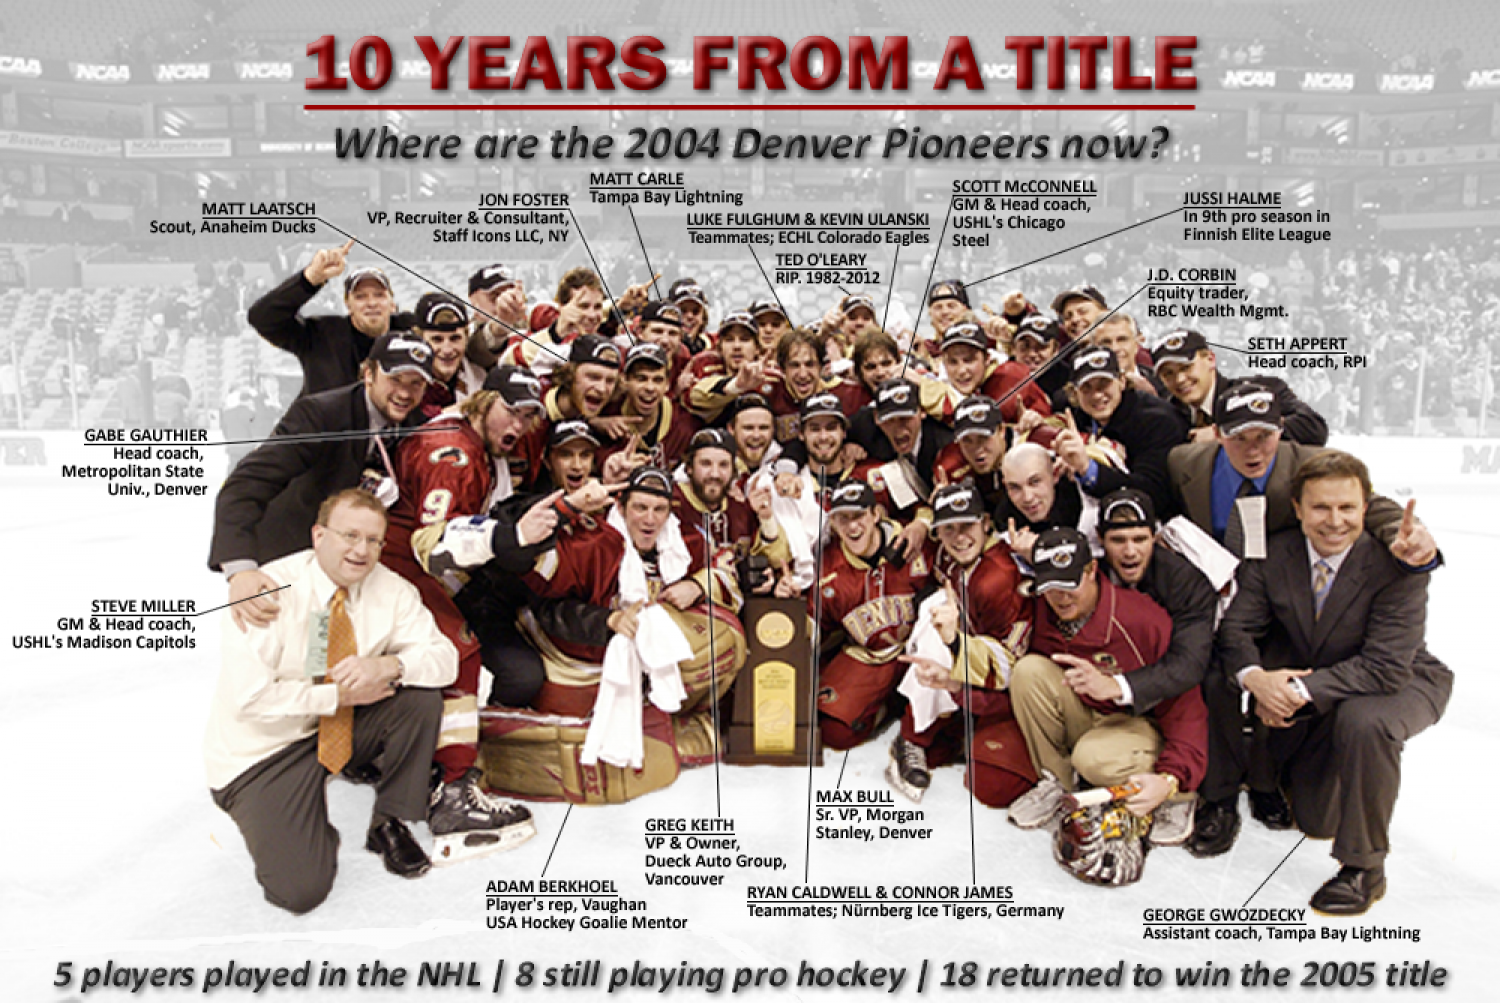 10 Years From a Title Infographic